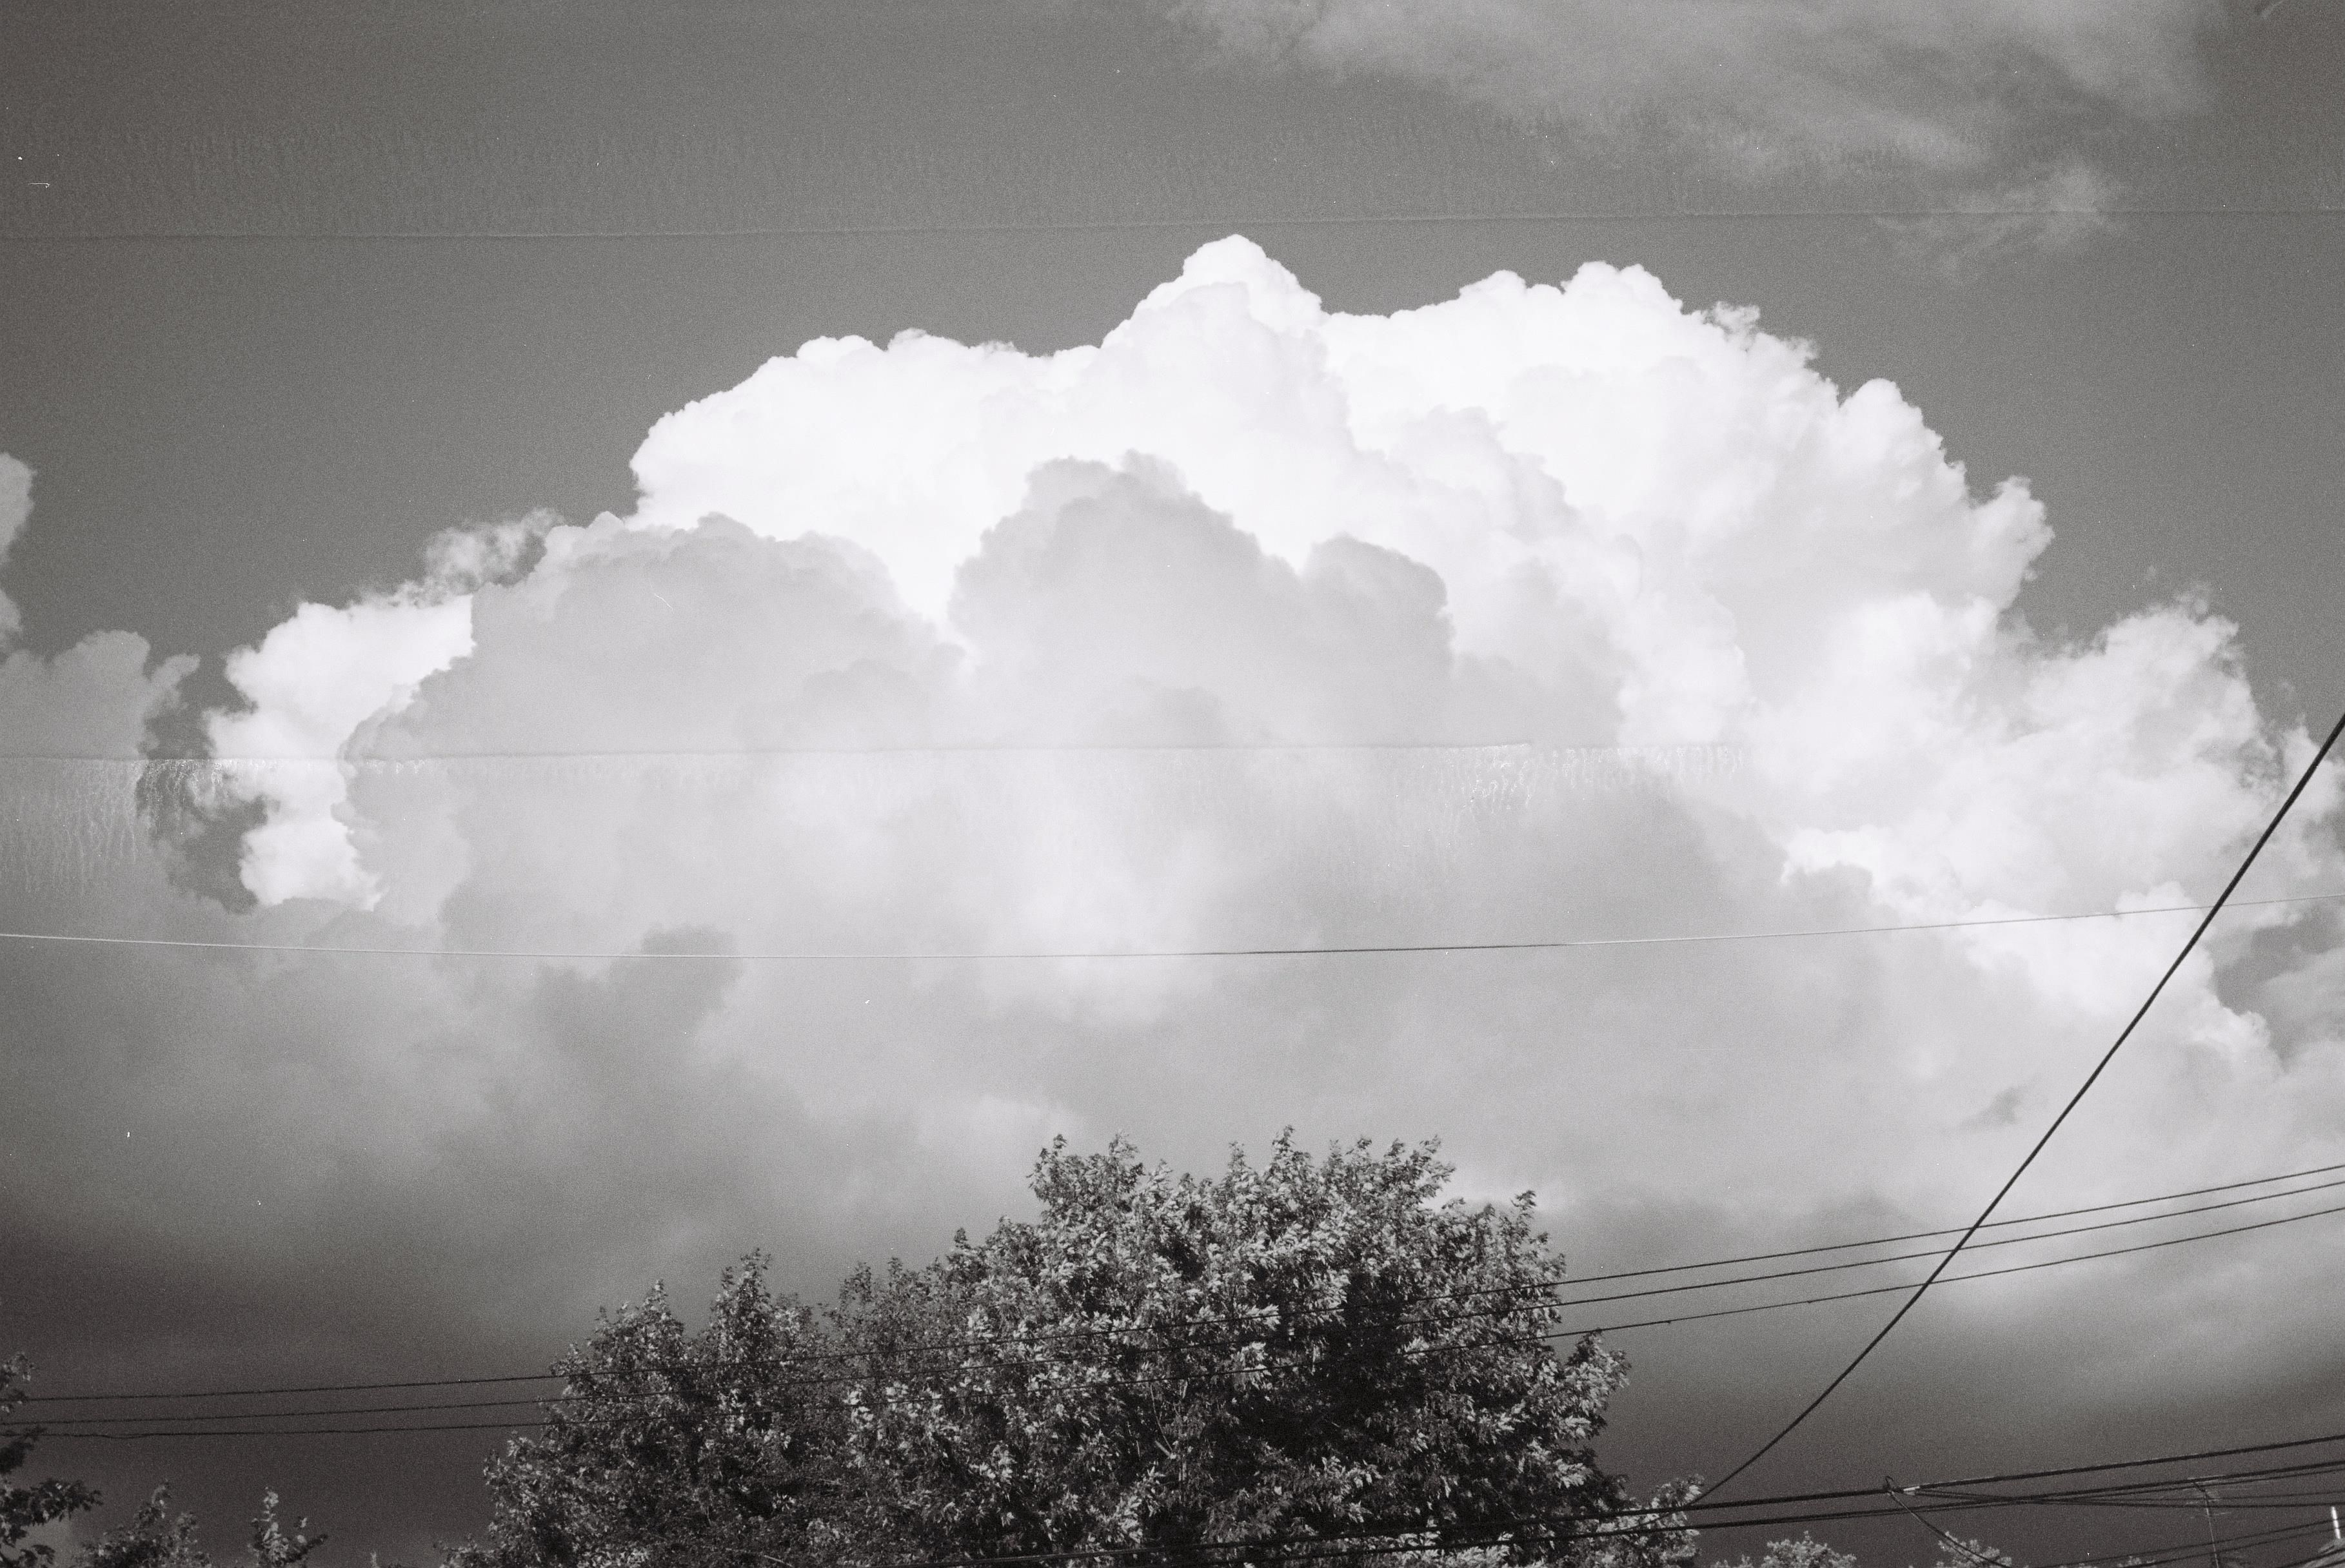 Konica C35 EF  Beautiful Chicago clouds and not so beautiful Chicago power lines.  Taken with a very old camera.